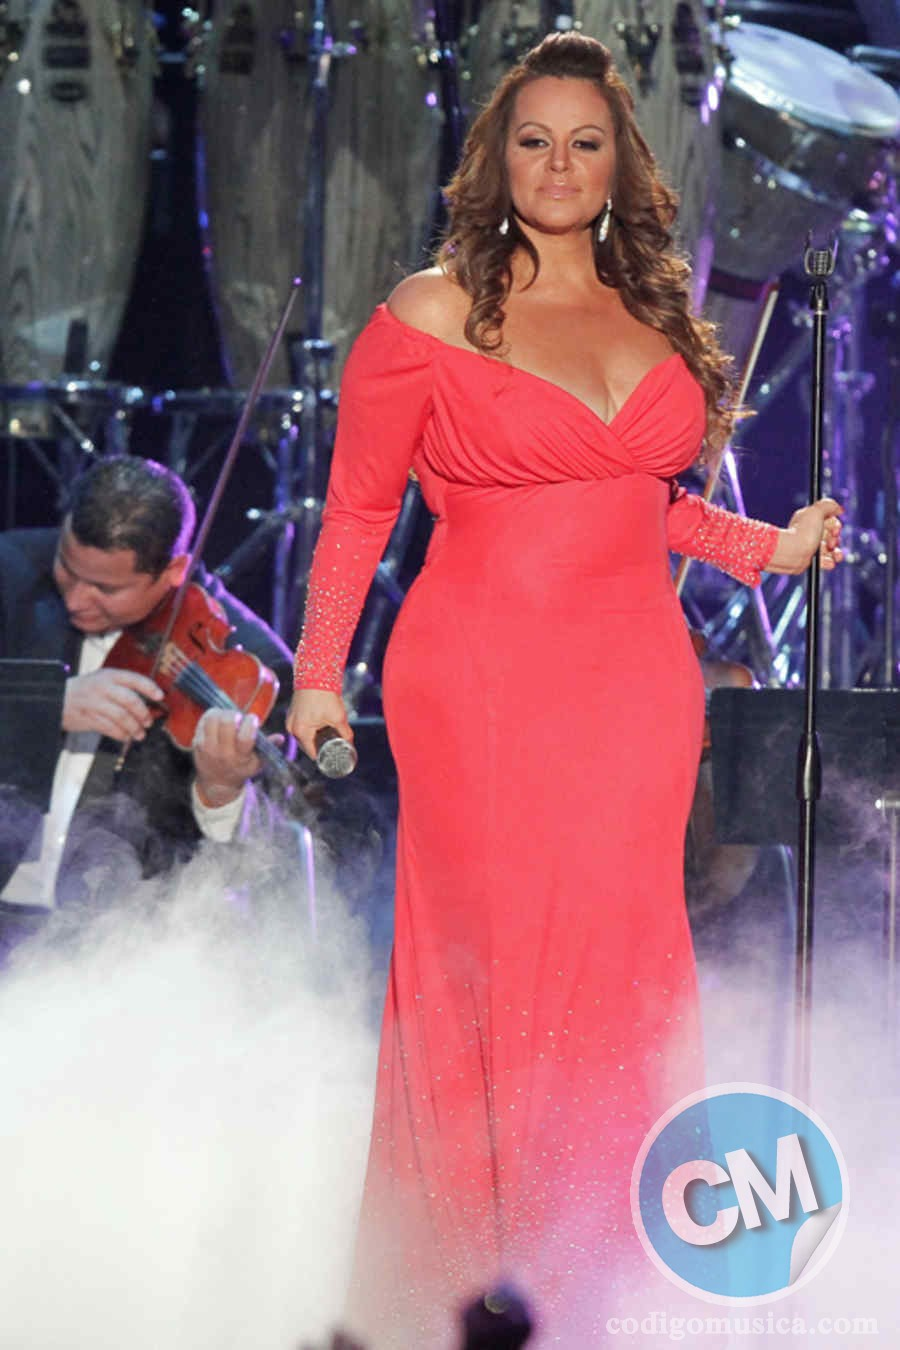 Fotos de Jenni Rivera